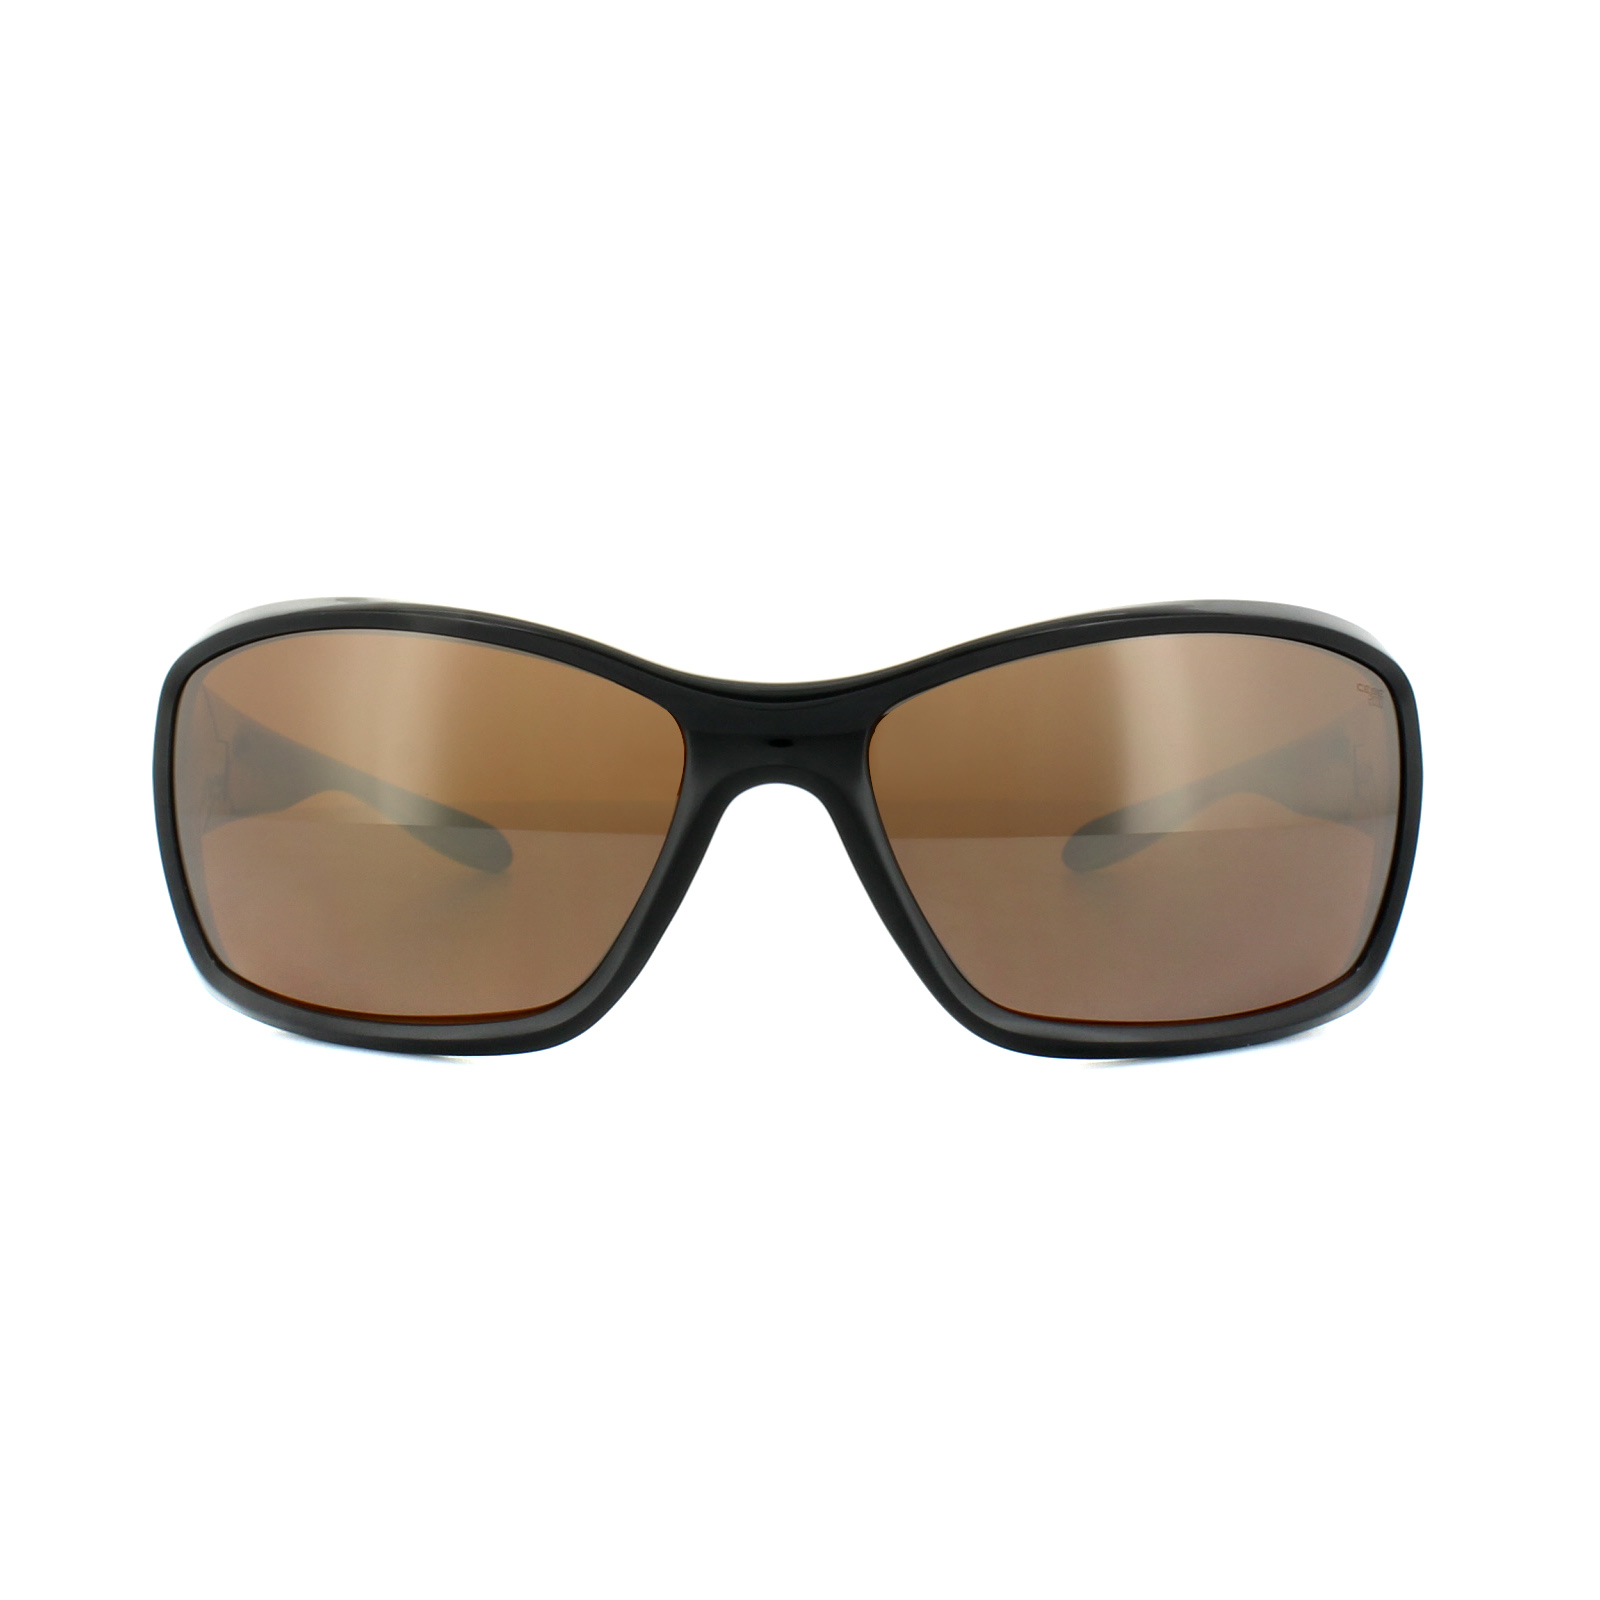 97831aaaaa Sentinel Cebe Sunglasses Impulse CB1792DK Shiny Black 2000 Brown Cat.4